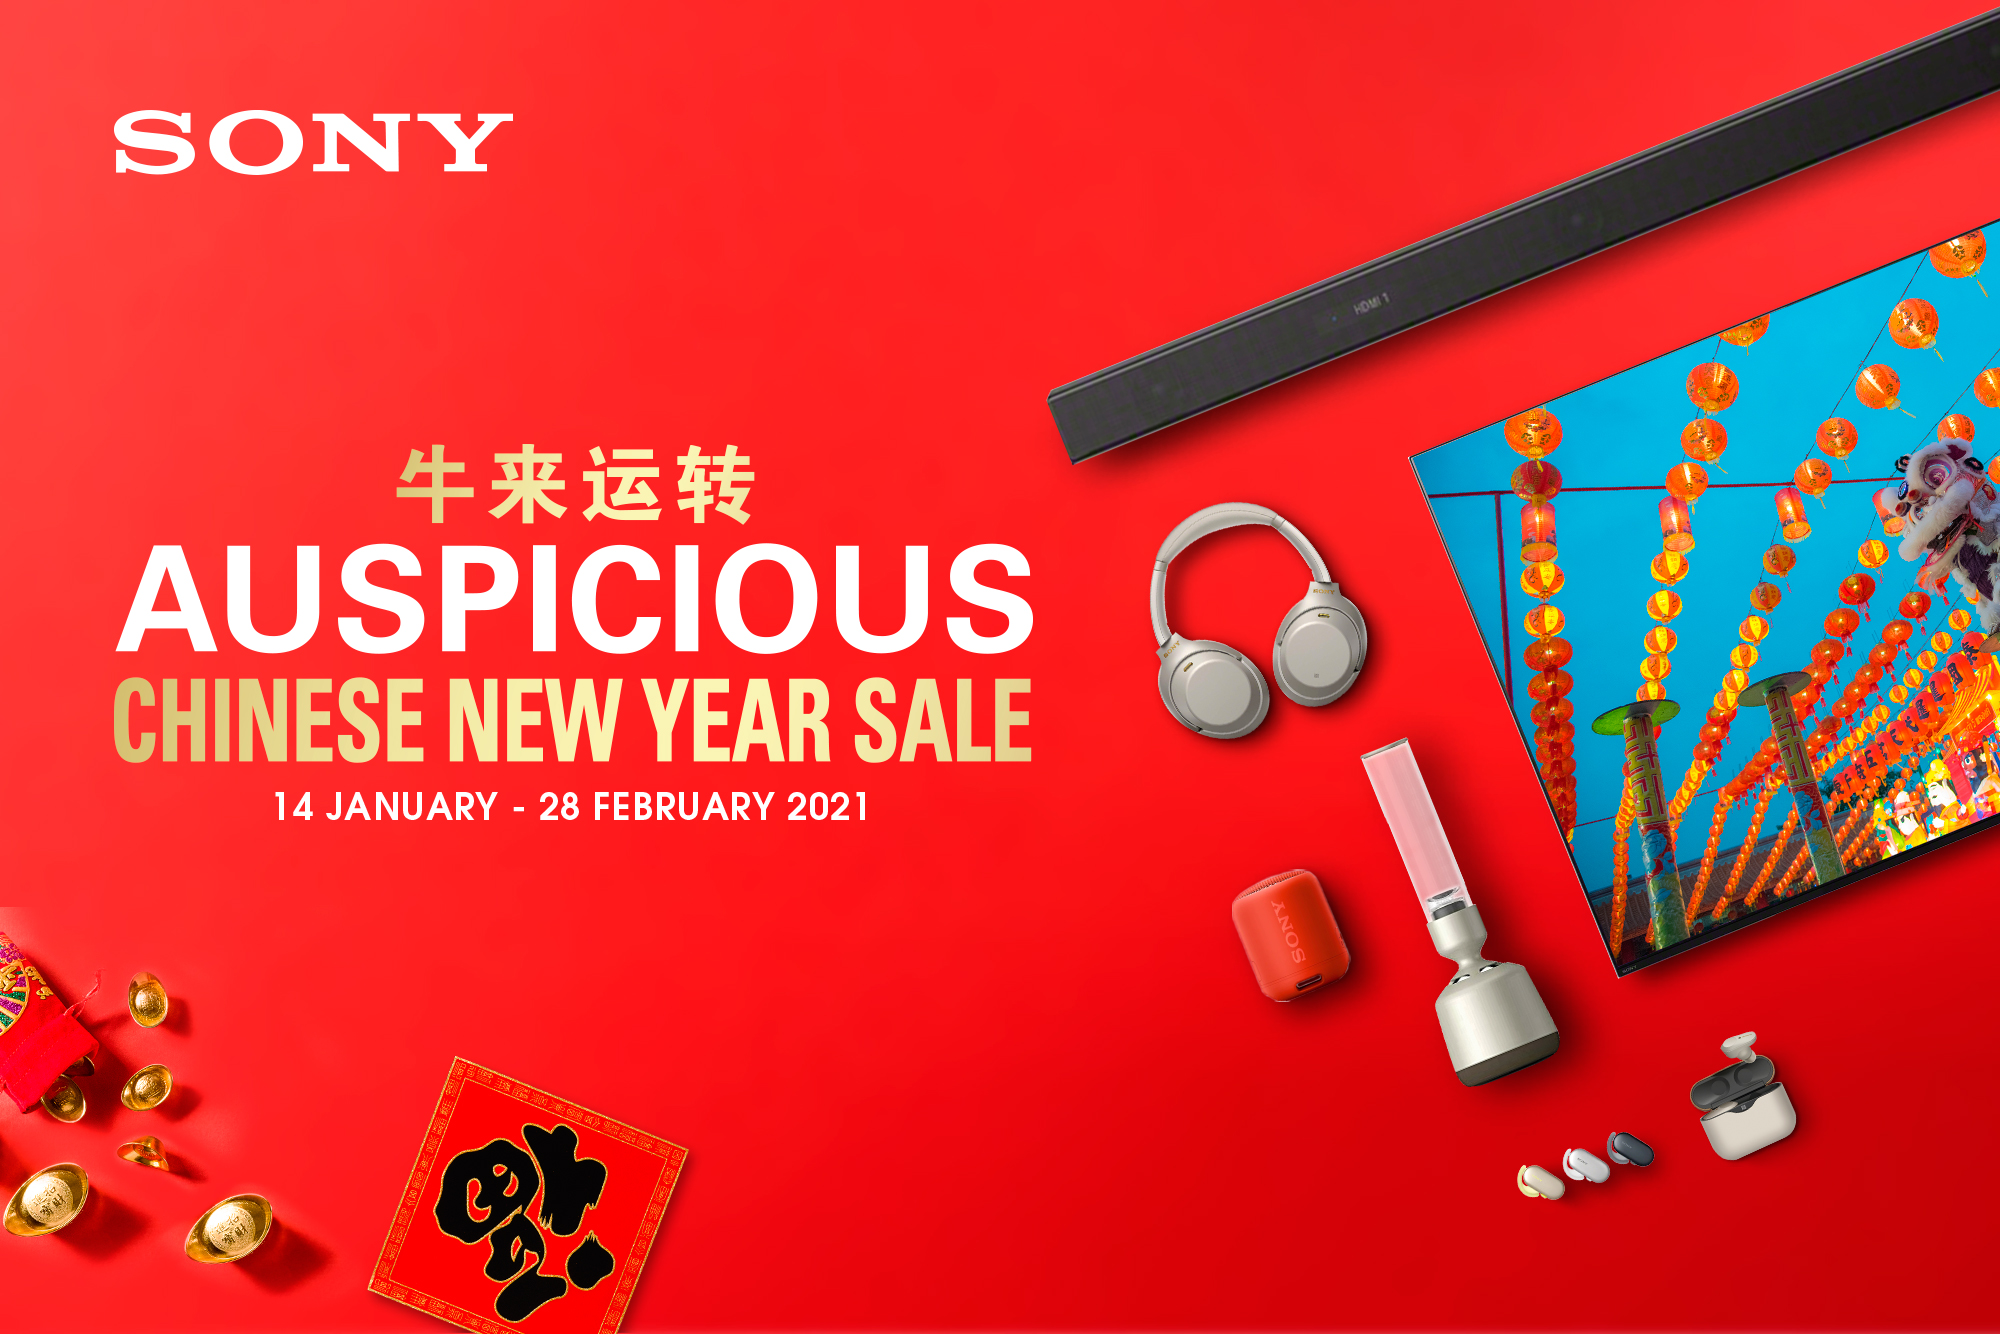 Have an Auspicious Chinese New Year with Sony CNY Sale